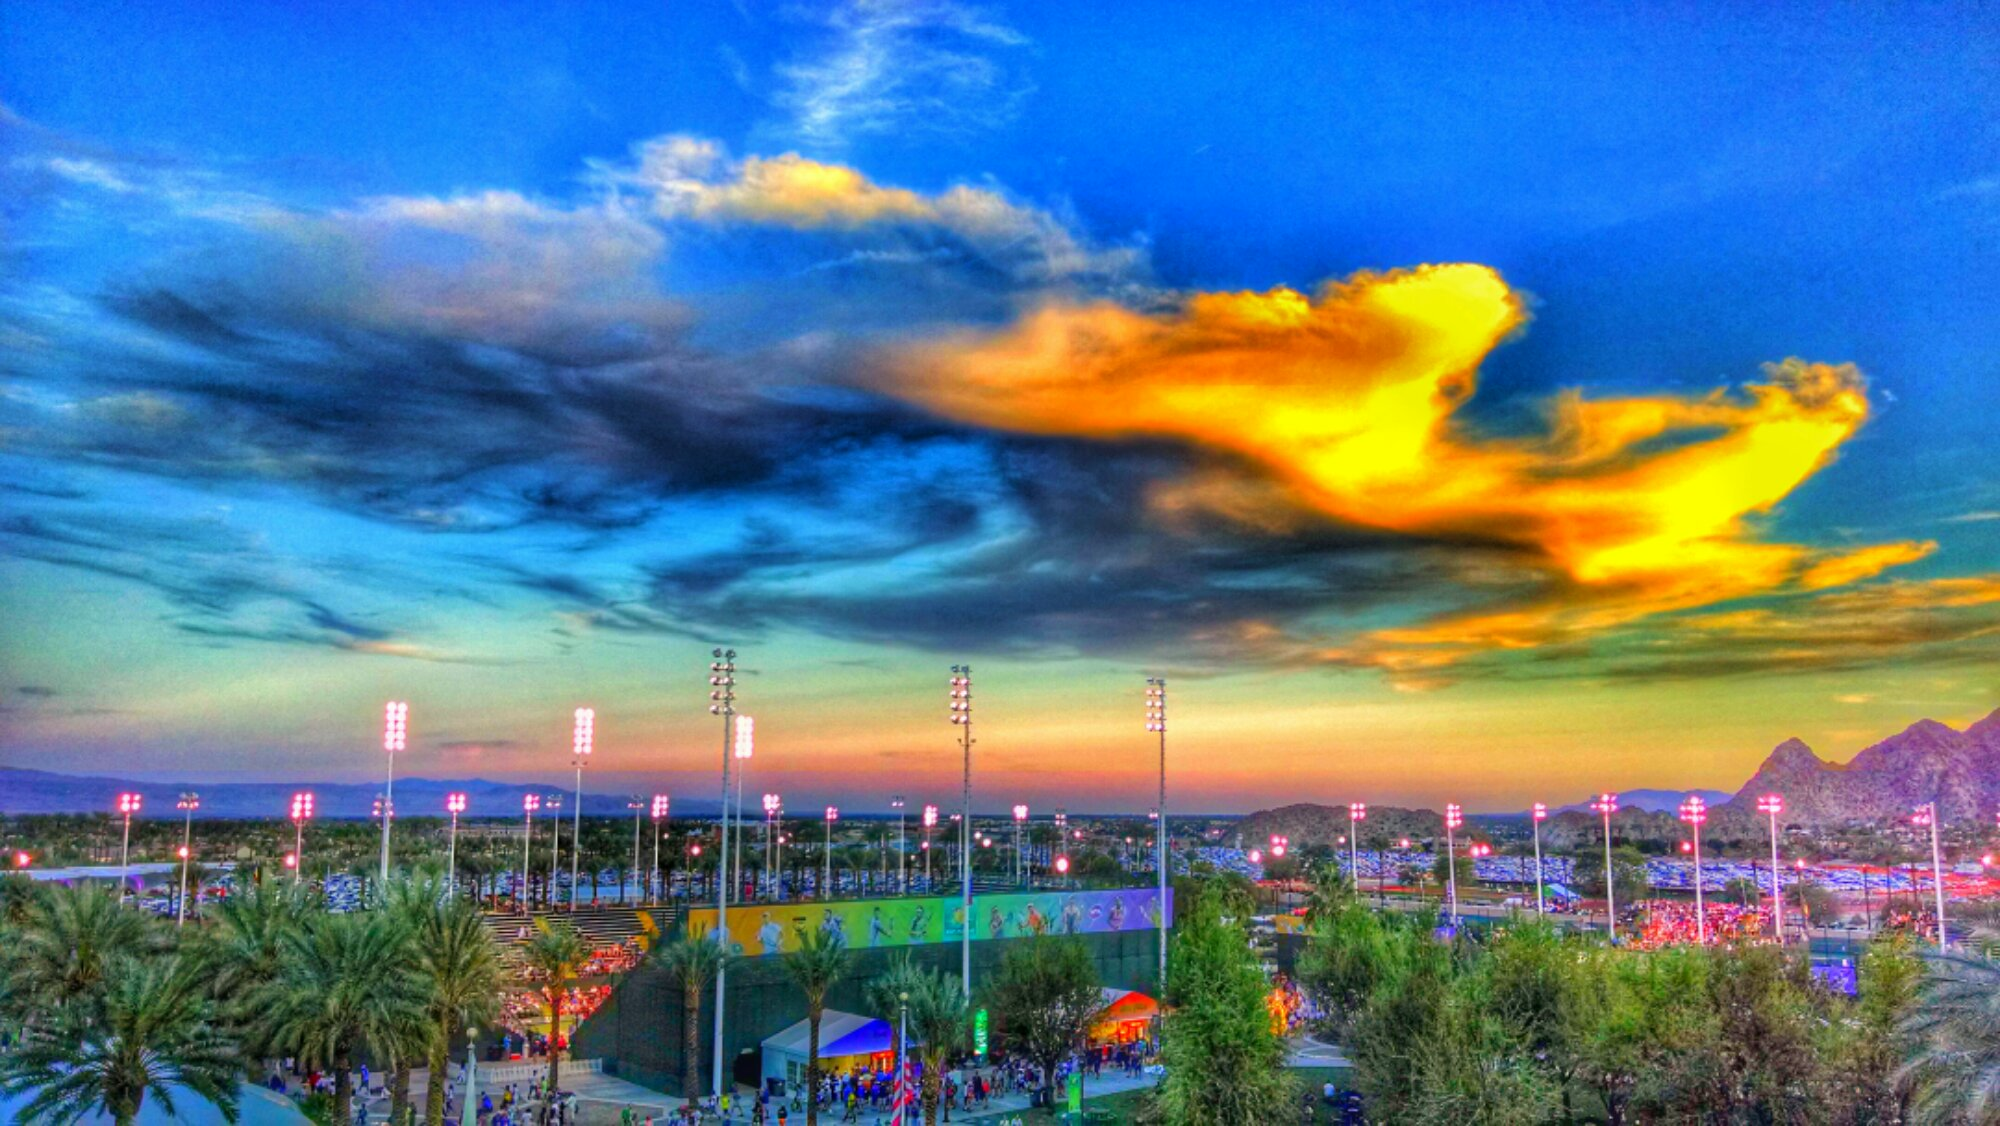 image the bnp paribas open at the indian wells tennis gardens - Indian Wells Tennis Garden